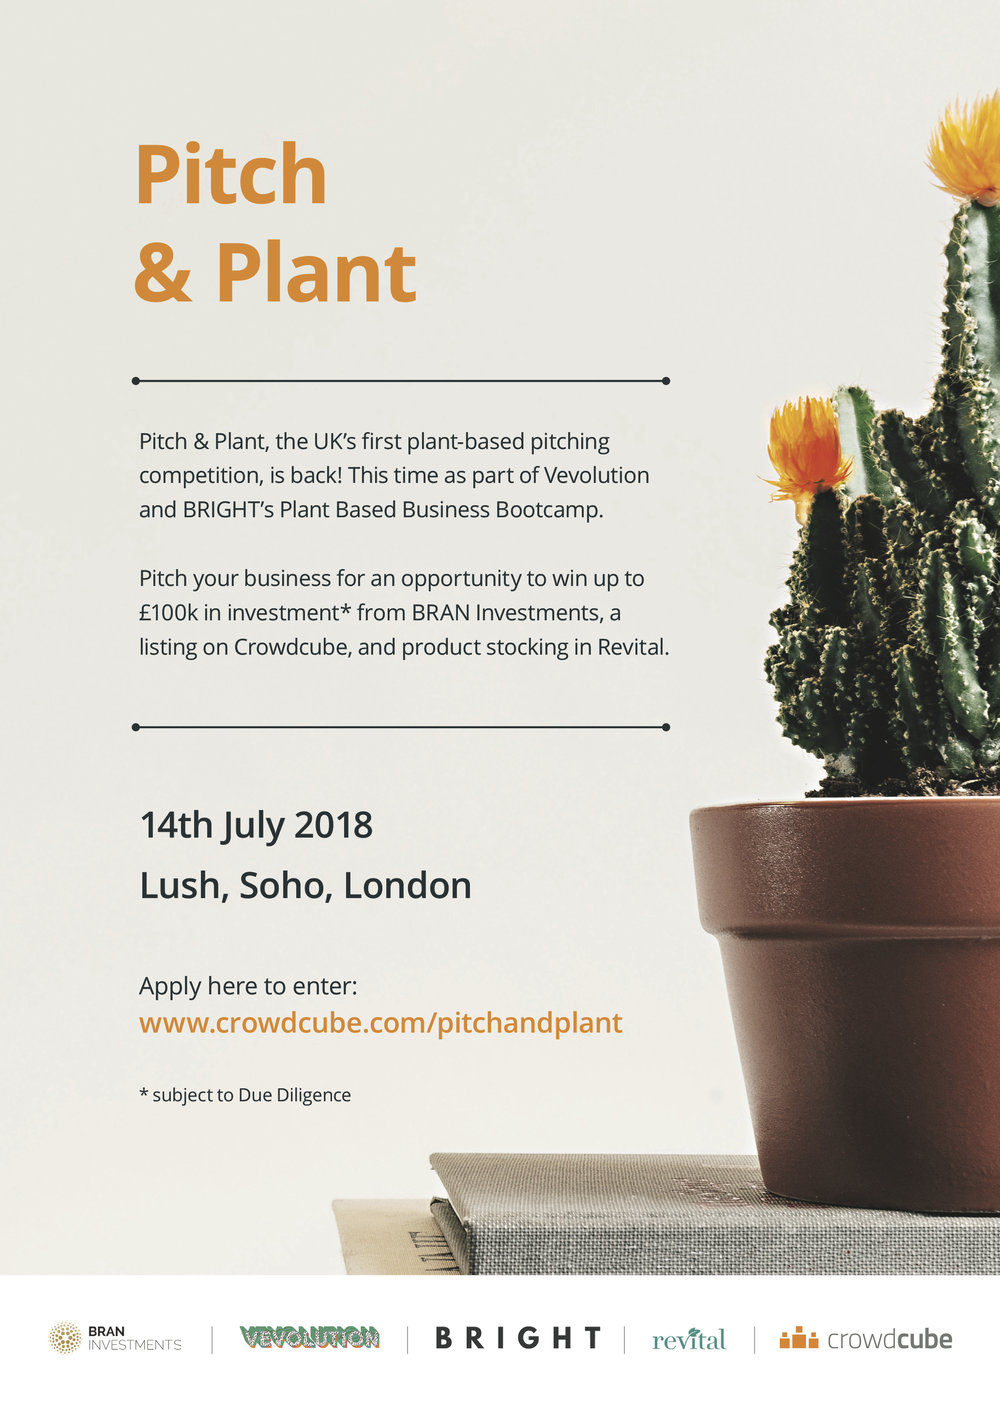 Vegan Pitch And Plant | Bright Zine Vevolution Business Bootcamp